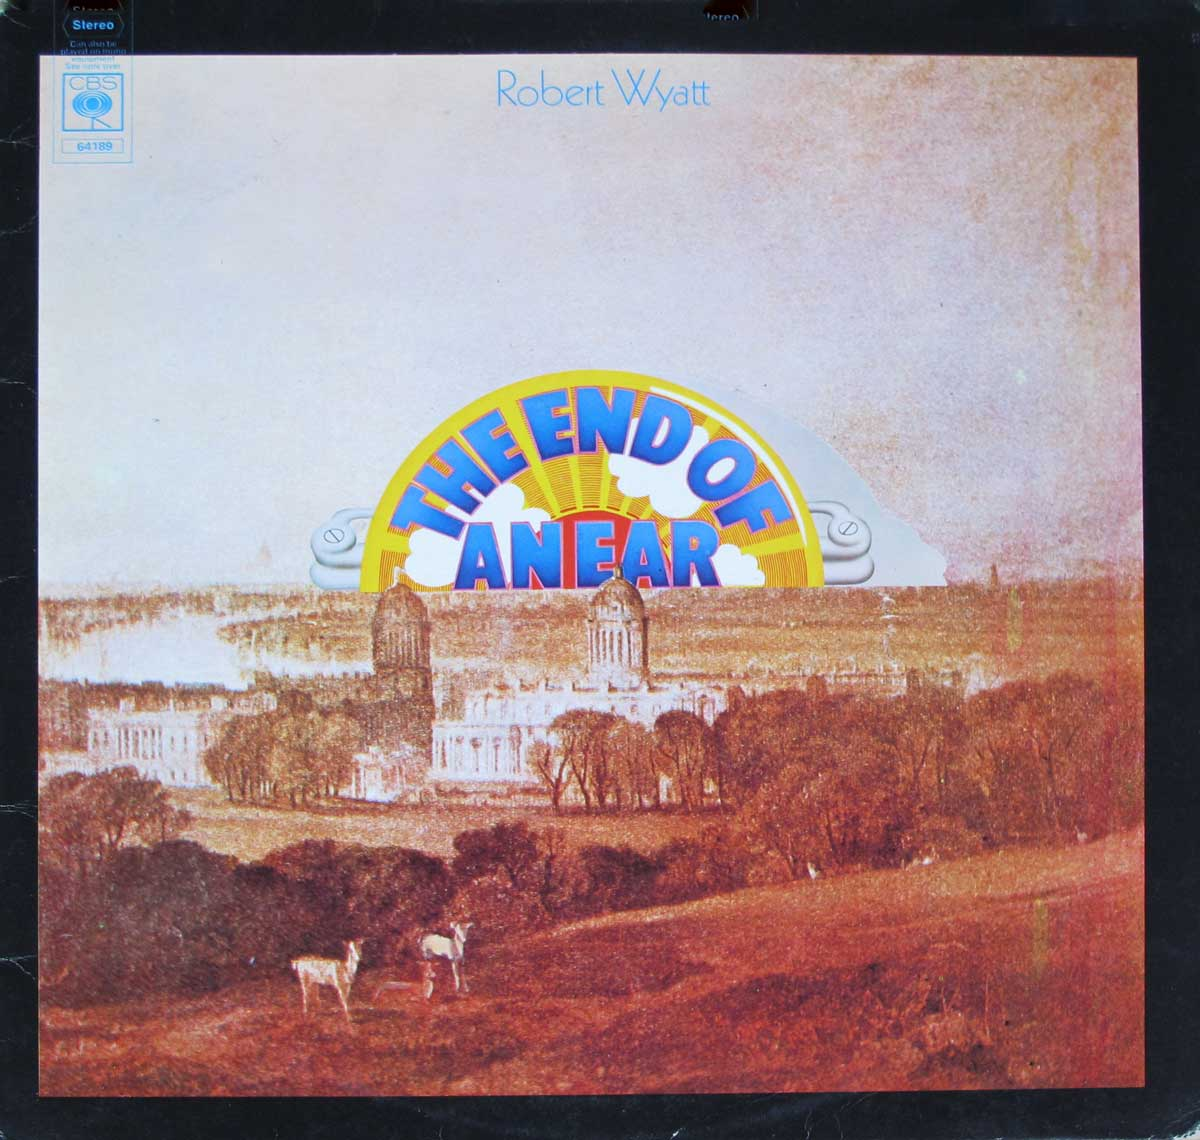 "large photo of the album front cover of: ROBERT WYATT End Of An Ear Uk England 12"" LP VINYL ALBUM"